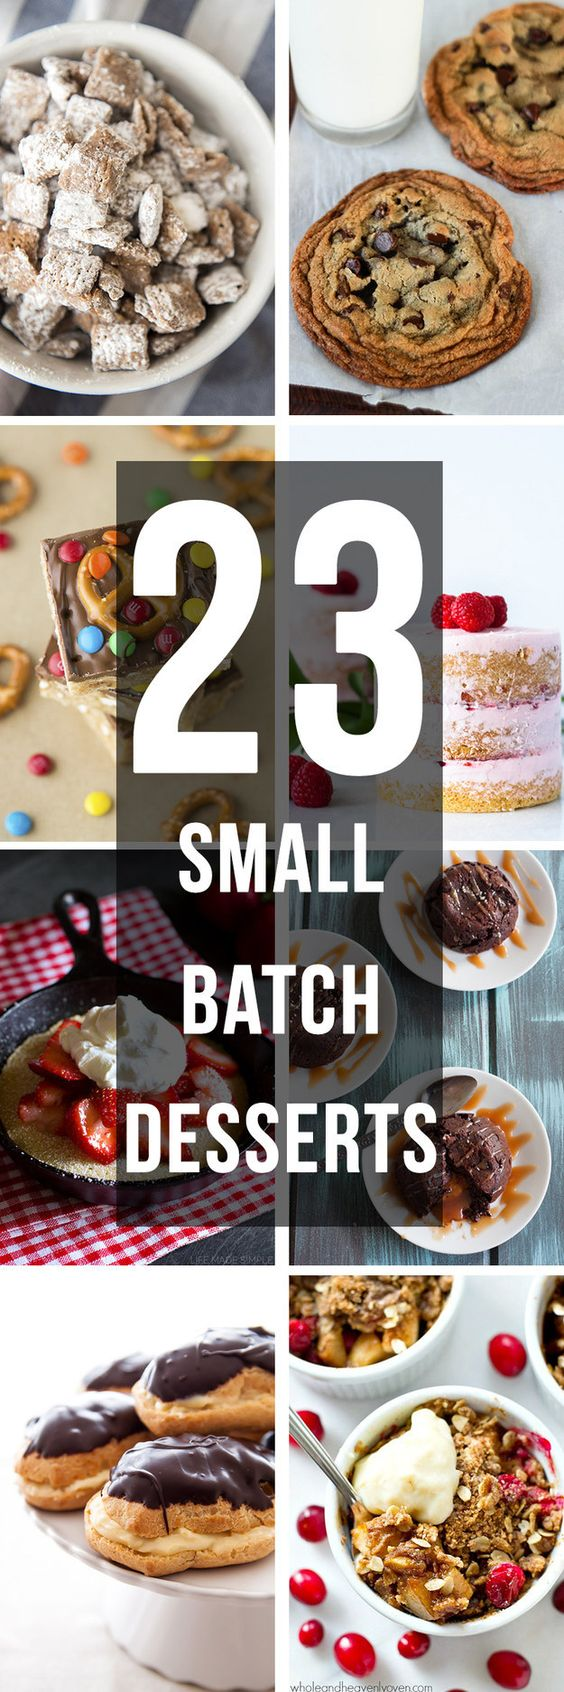 Because sometimes you just need something sweet, but you don't want to make a whole big batch. All of these recipes are perfect for just you, or they'd be great for sharing for Valentine's day too!